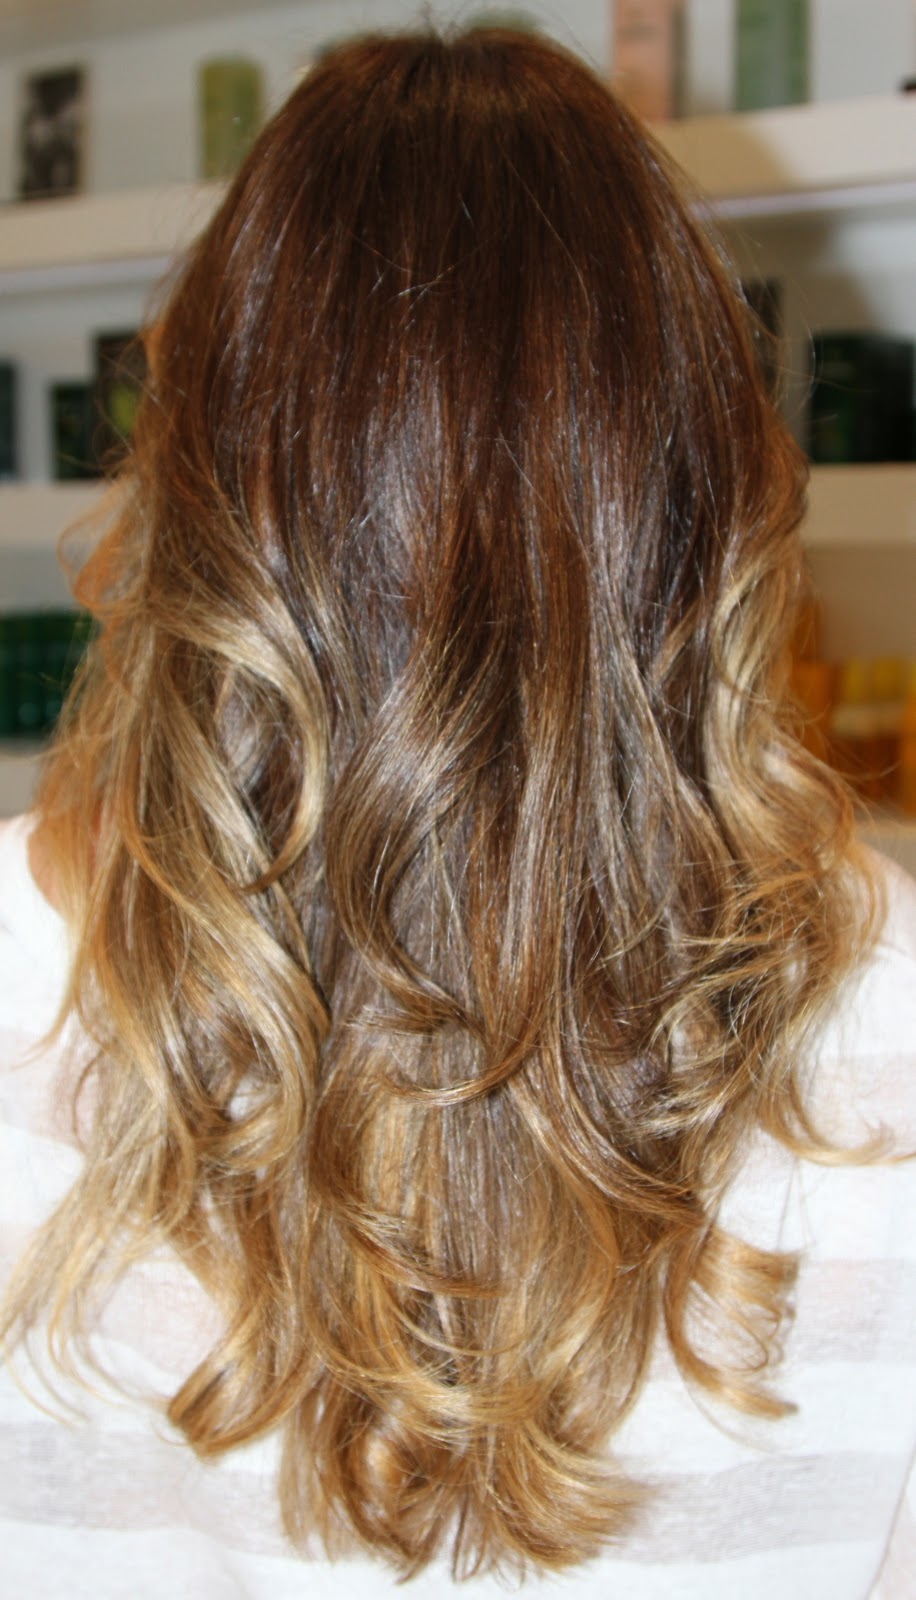 hair color by johnny ramirez hair color by johnny ramirez hair color ...